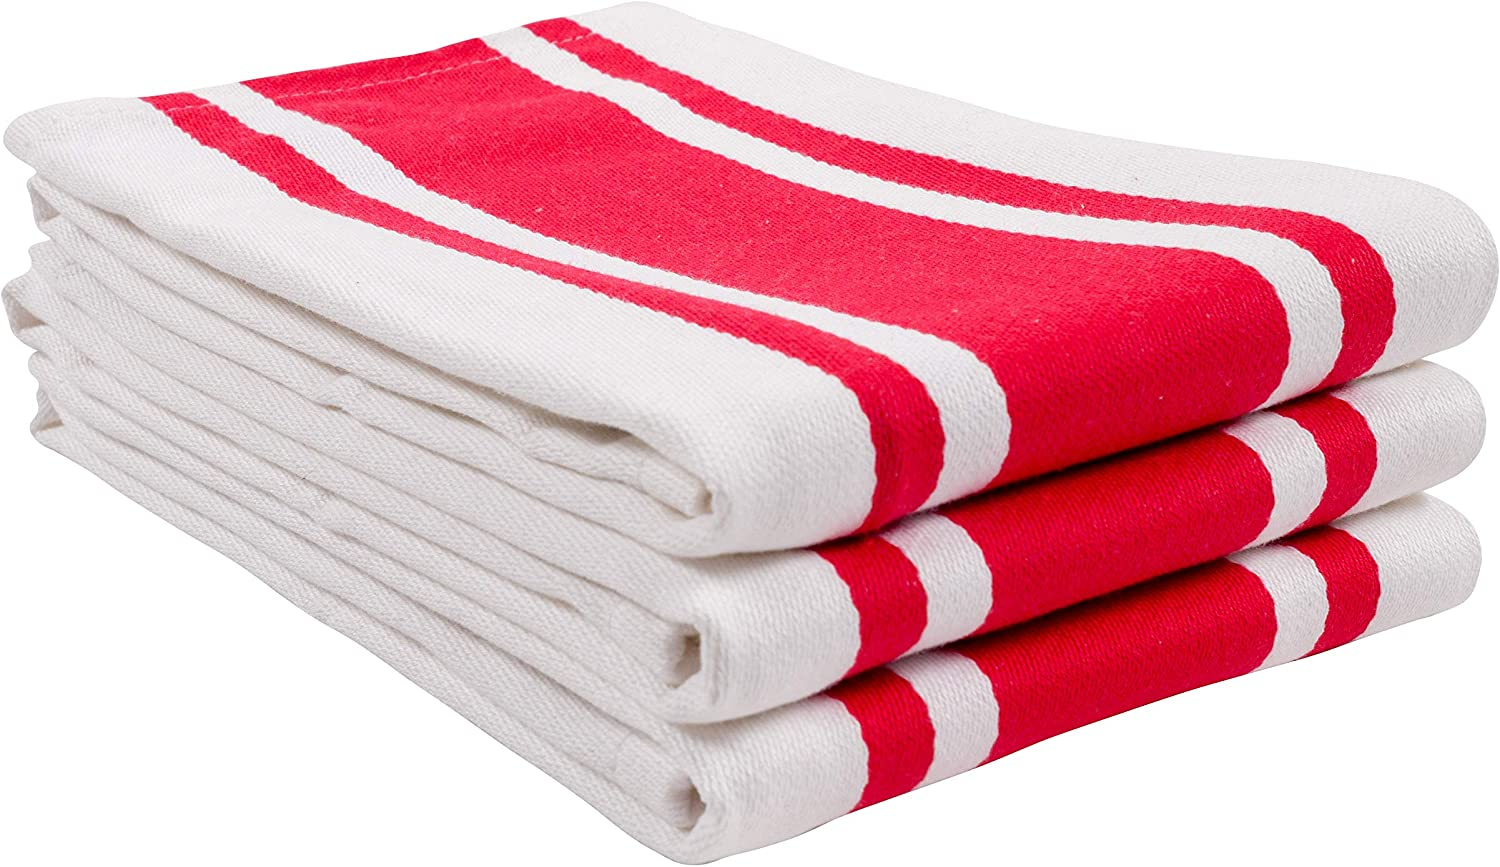 KAF Home Union Stripe Kitchen Dish Towel Set of 3, Plush, Absorbent, 100-Percent Cotton, 18 x 28-inch (Red)